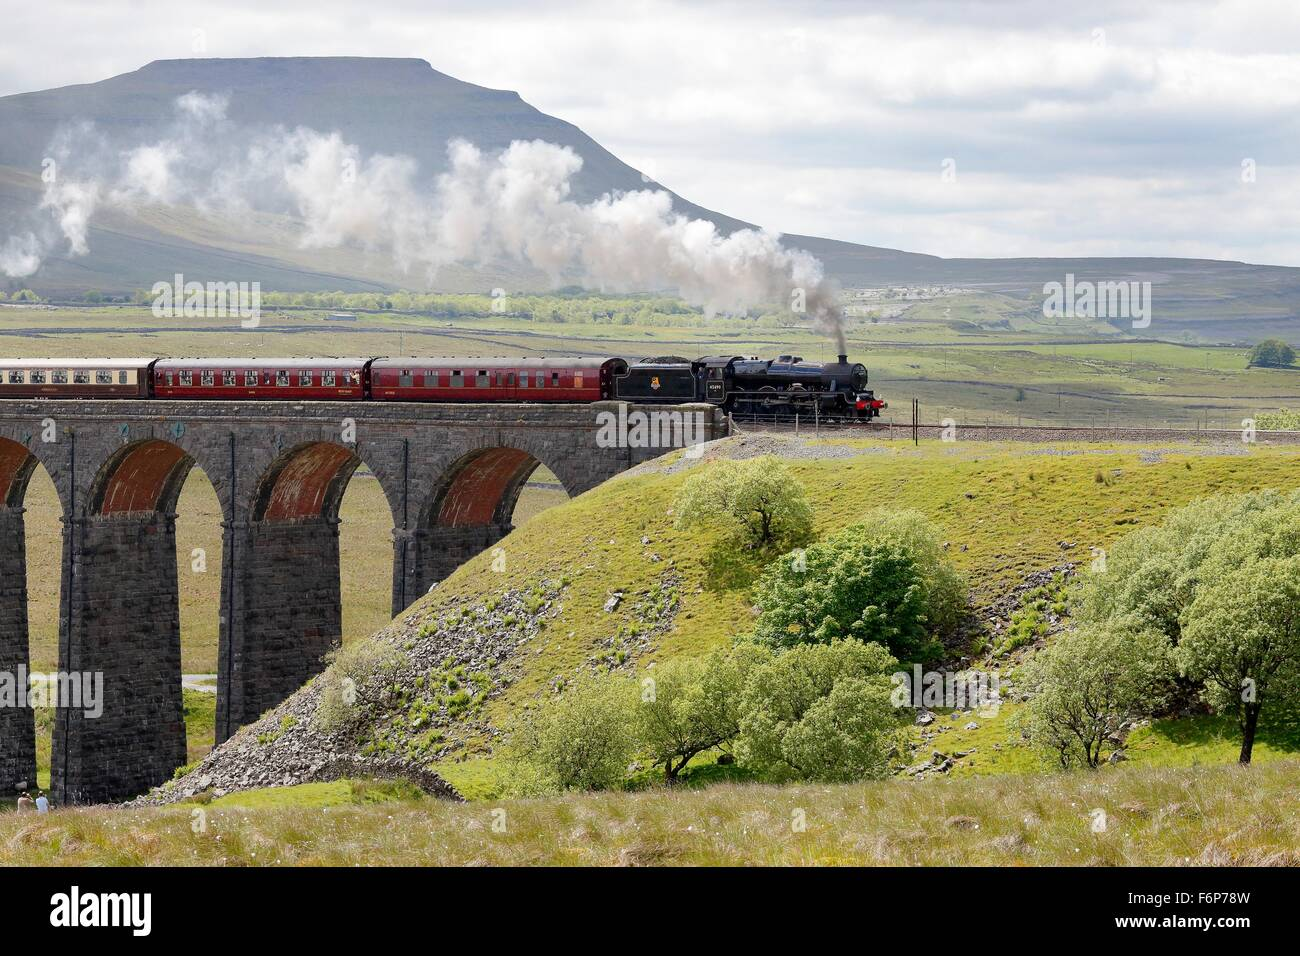 Settle and Carlisle Railway, Ribblehead Viaduct. Steam train LMS Jubilee Class Leander 45690 crossing the viaduct. - Stock Image